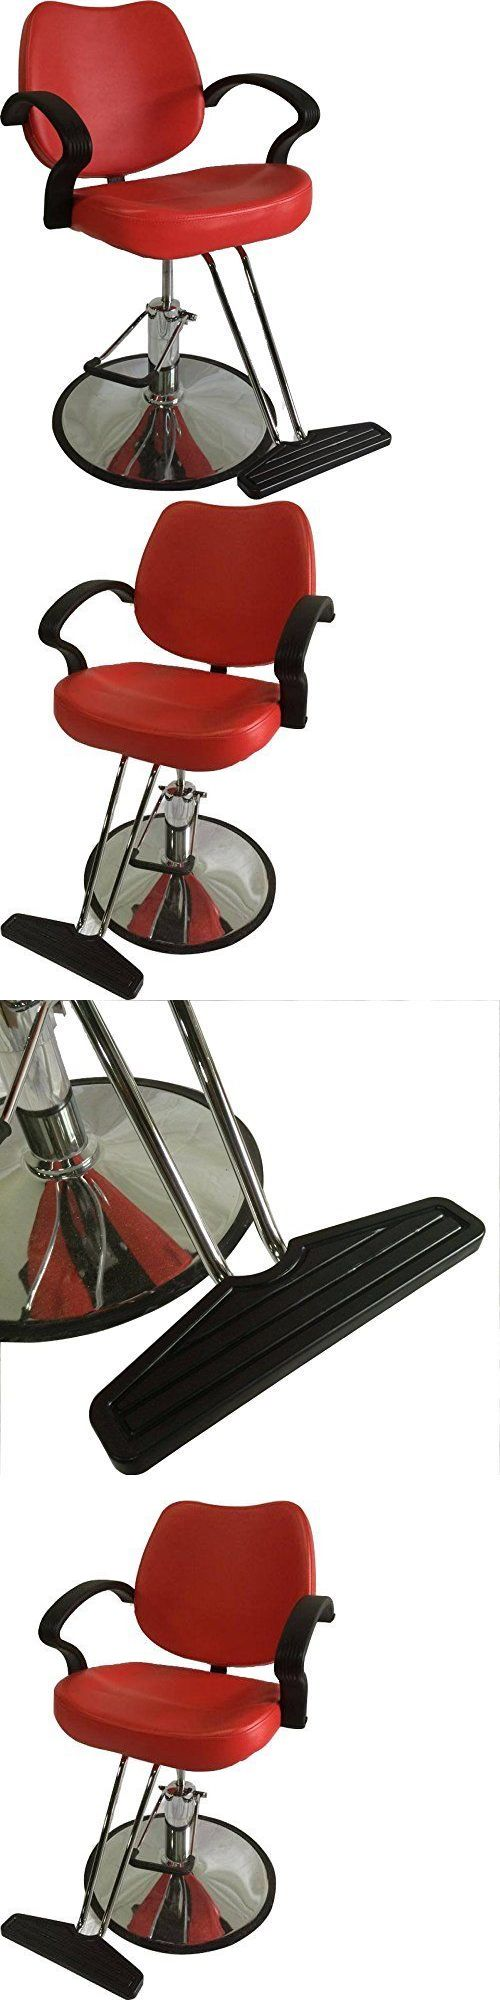 Salon Chairs and Dryers: Classic Hydraulic Styling Barber Chair Salon Equipment Hair Beauty Supply BUY IT NOW ONLY: $88.88